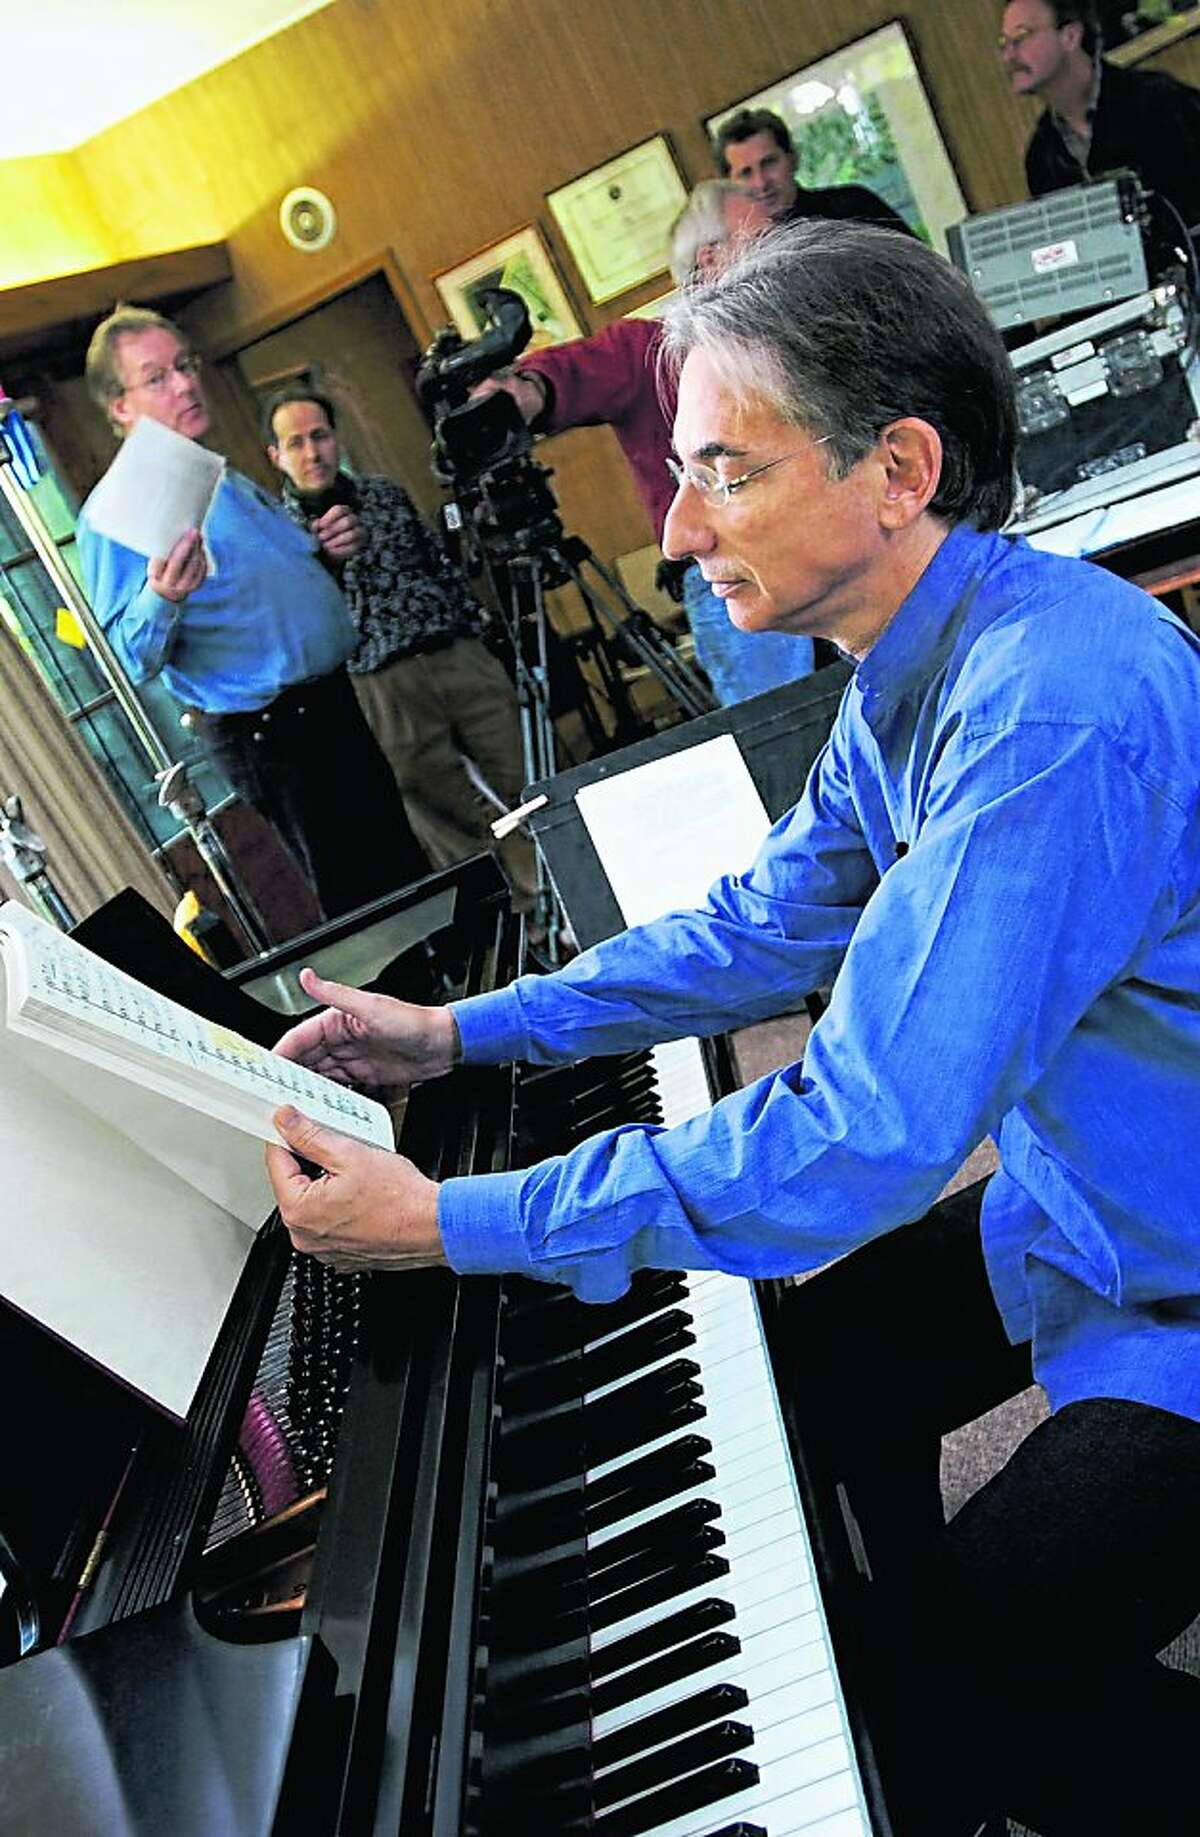 Michael Tilson Thomas reviews an Aaron Copland score at the the piano during the taping of the